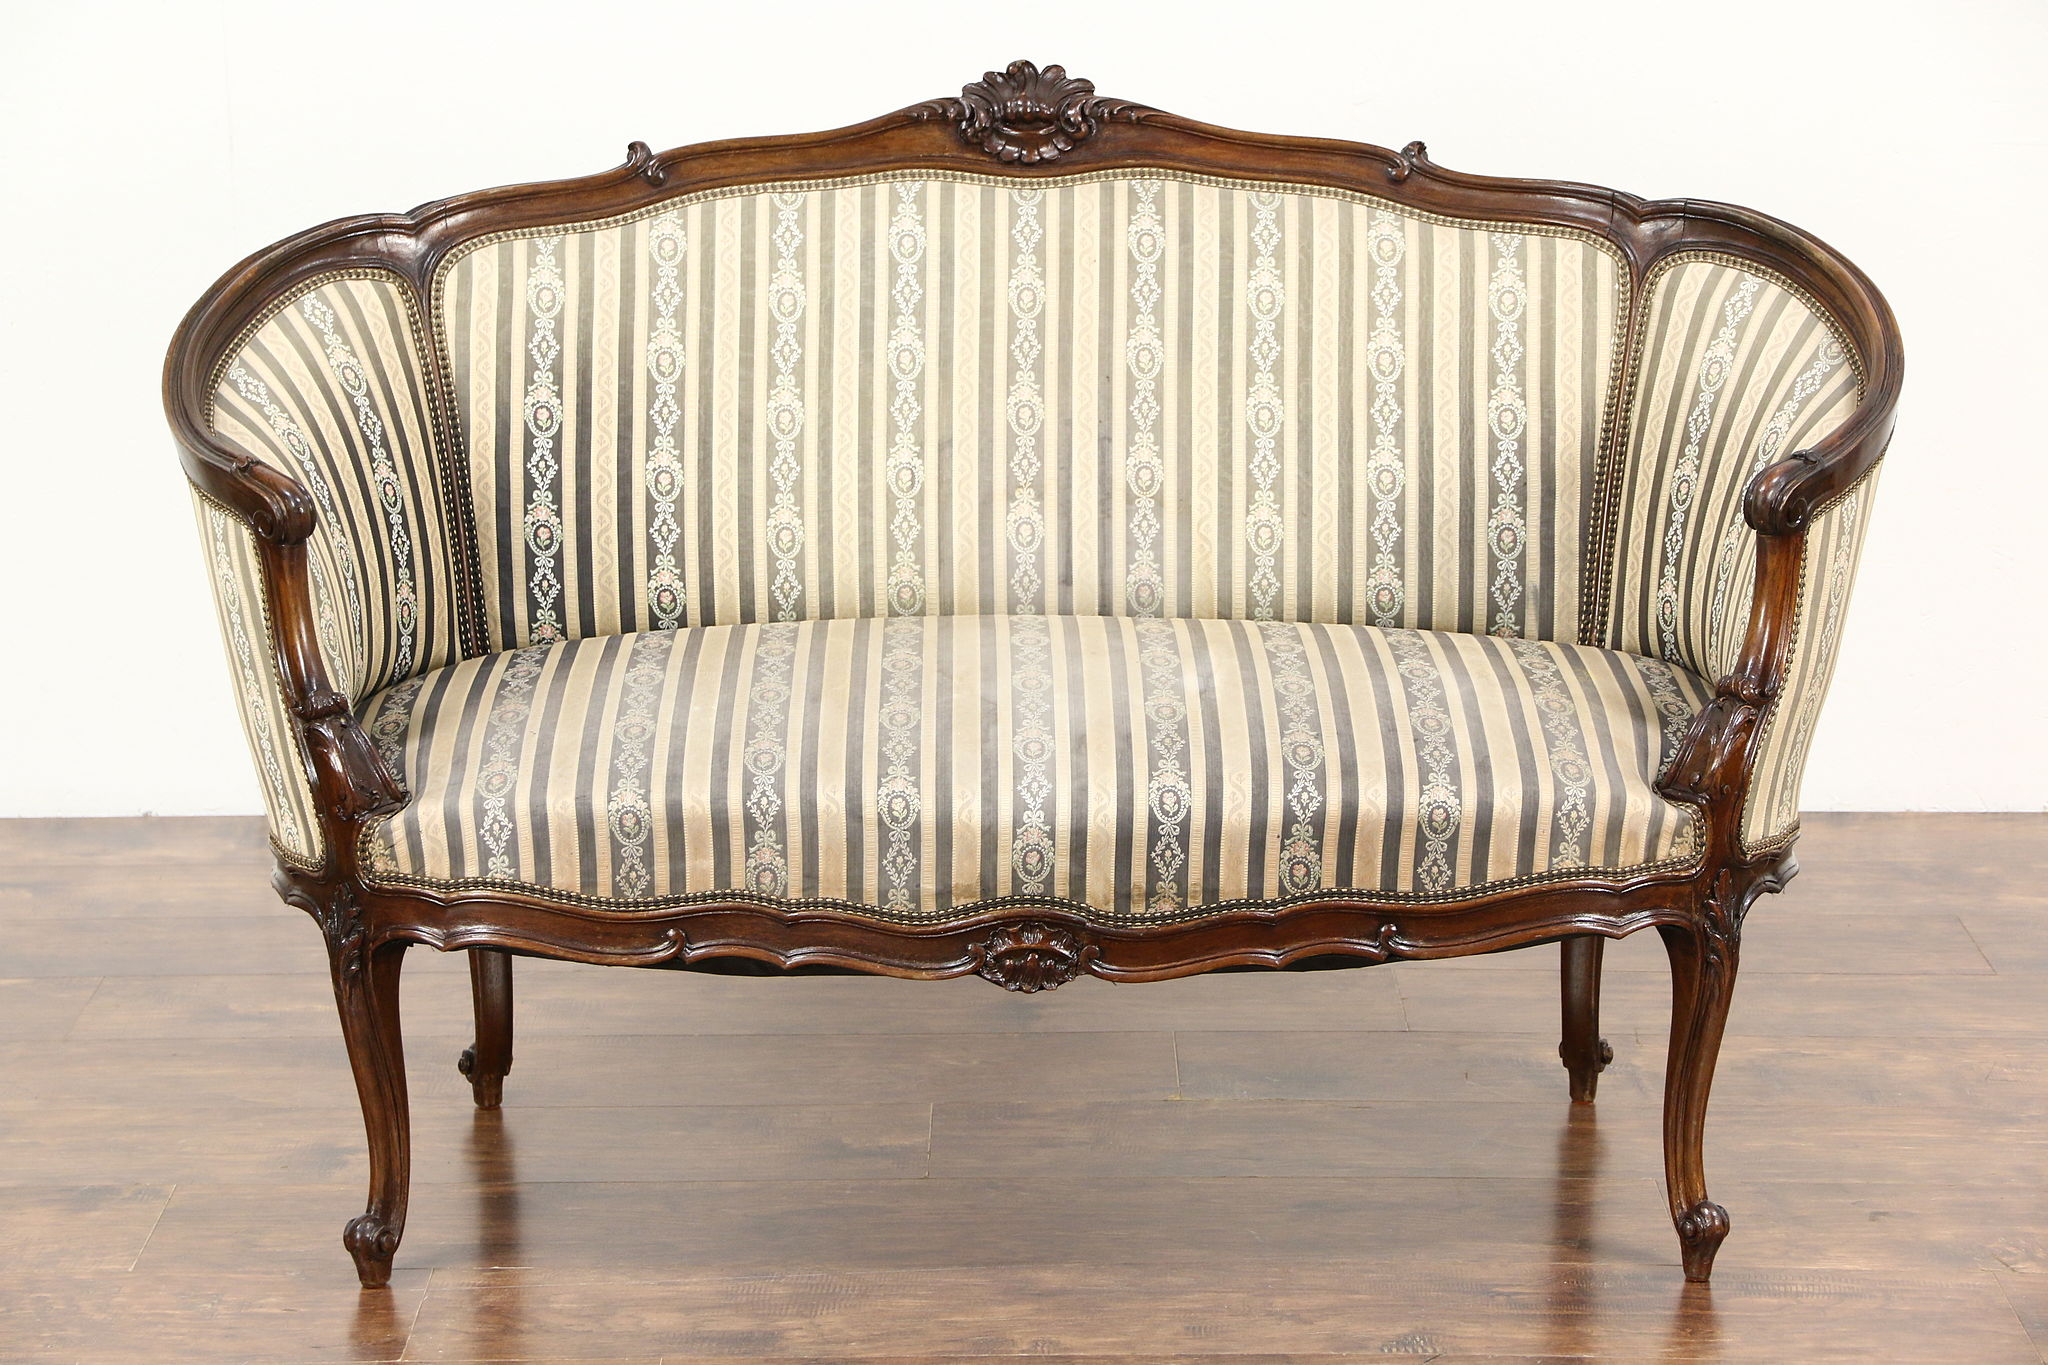 SOLD French Louis XIV Hand Carved Walnut 1920 Antique Salon